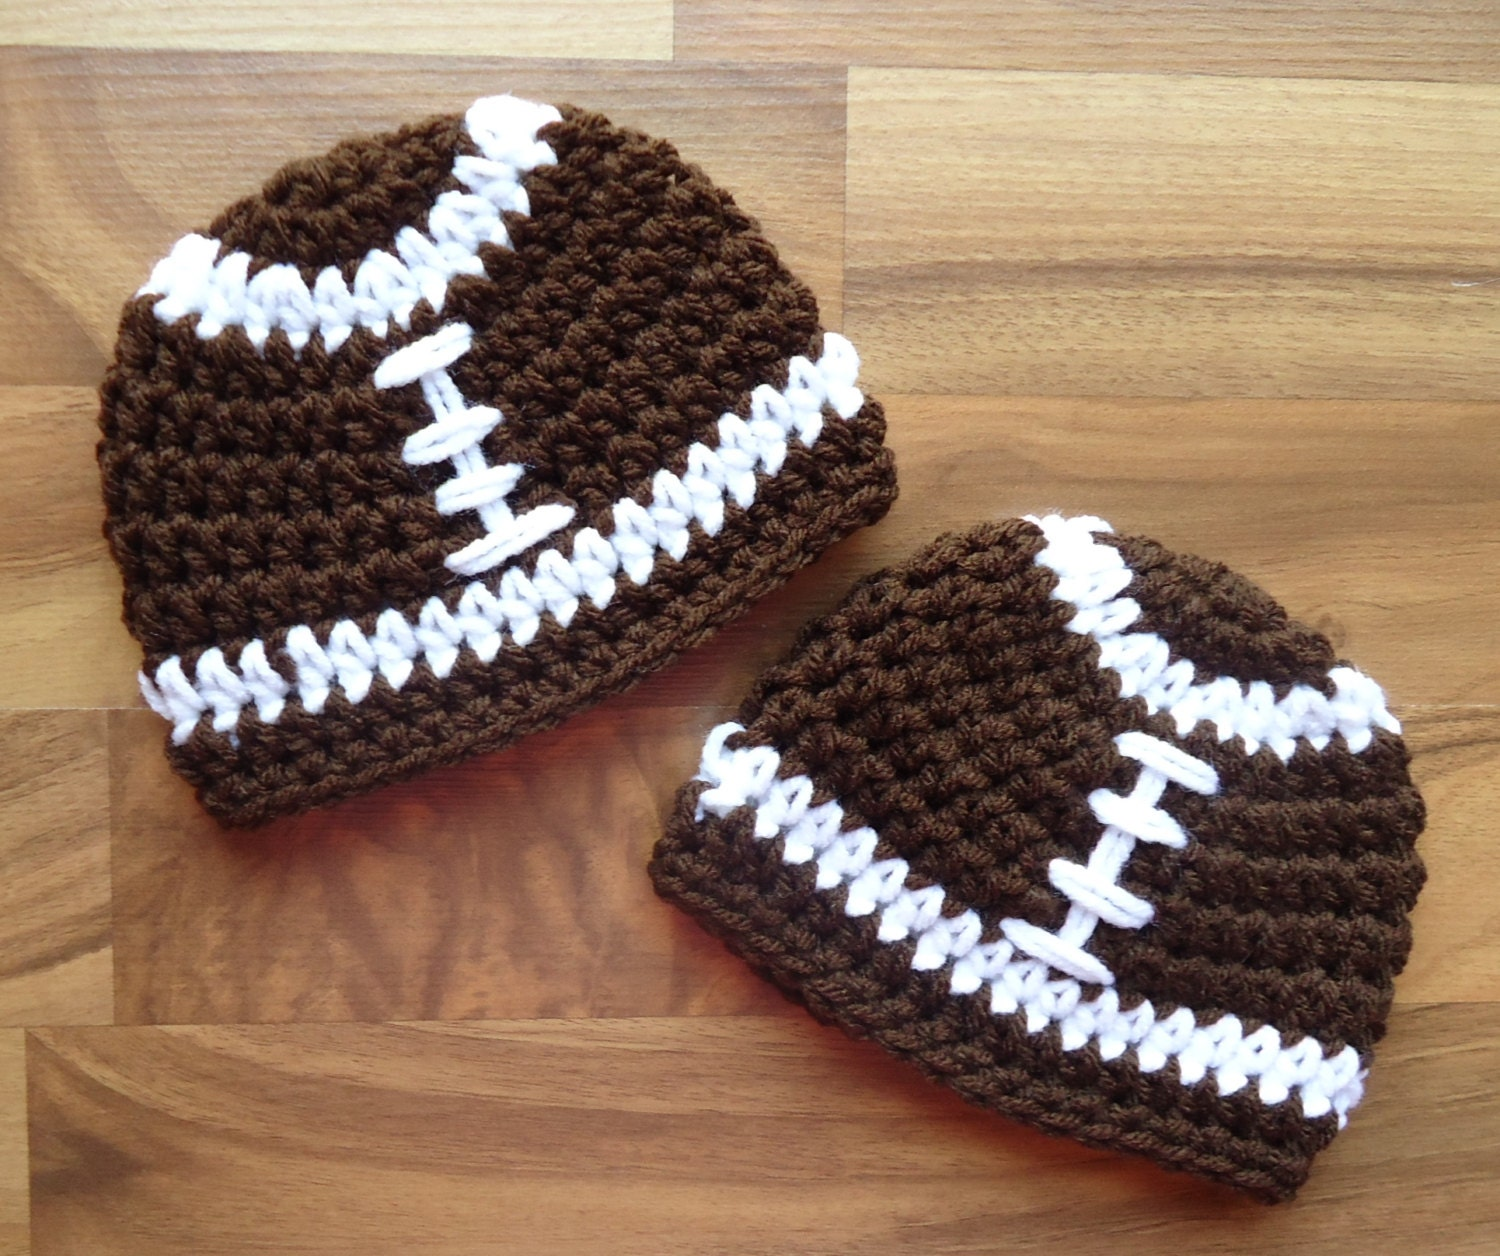 Baby football crochet hat craftbnb football hat free crochet patternright handedyoutube crocheted baby boy football hats twins by karaandmollyskids bankloansurffo Choice Image